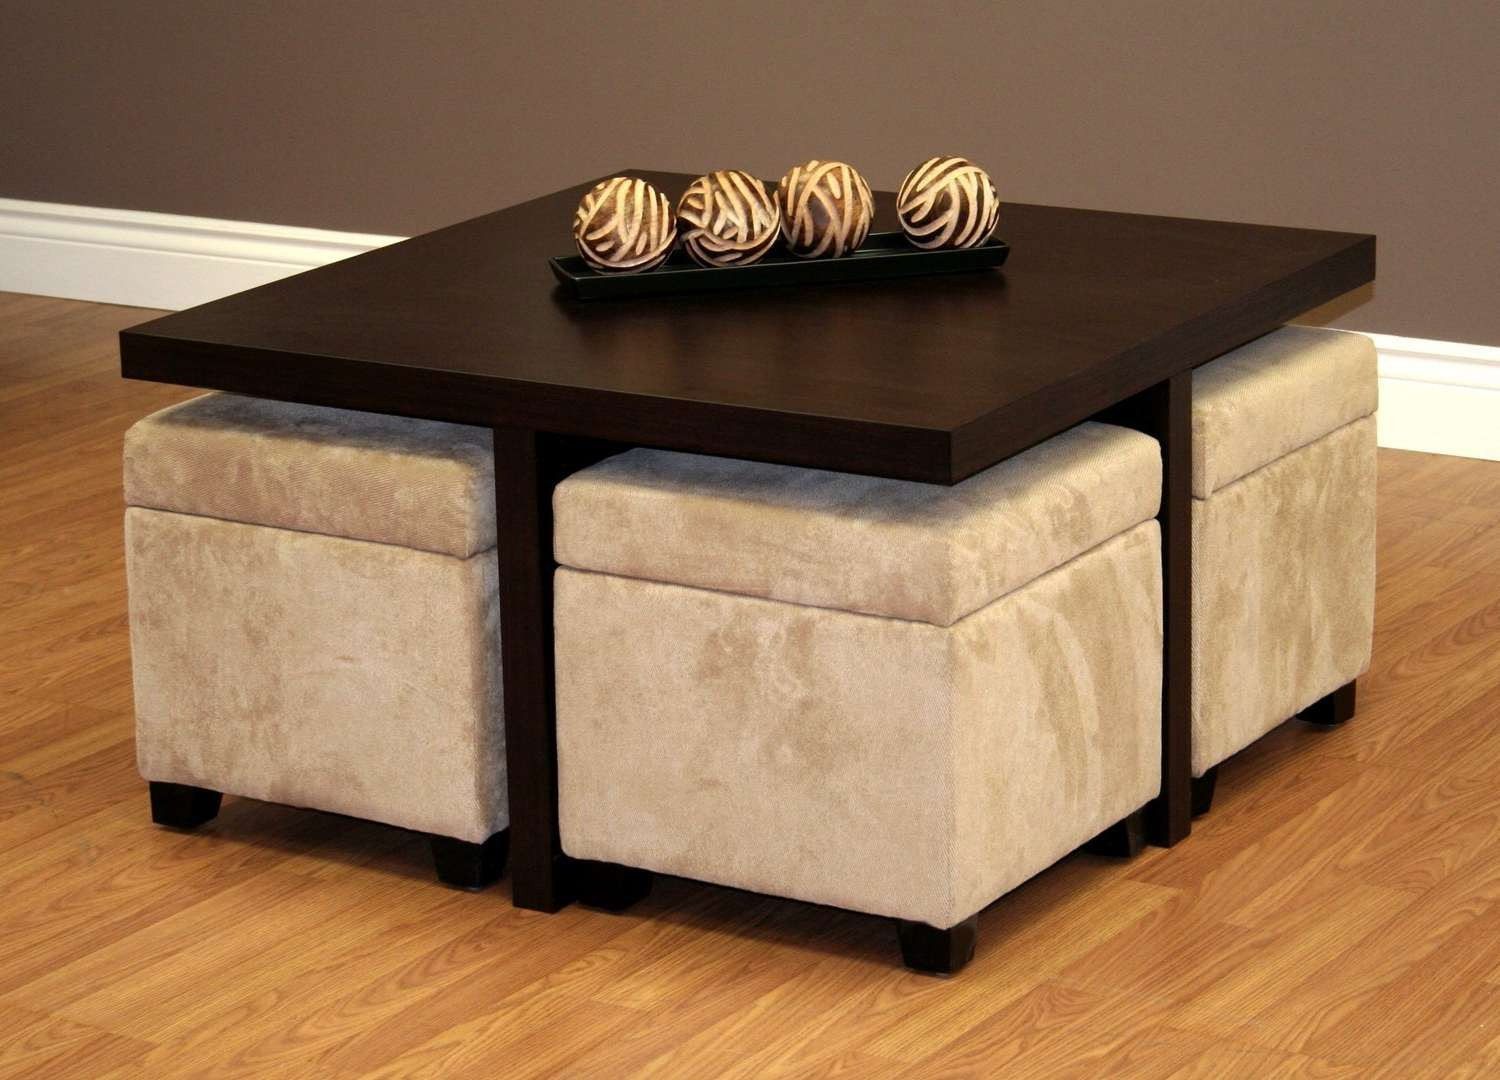 2017 Coffee Tables With Seating And Storage Inside Trends Coffee Table With Ottomans Underneath (View 3 of 20)